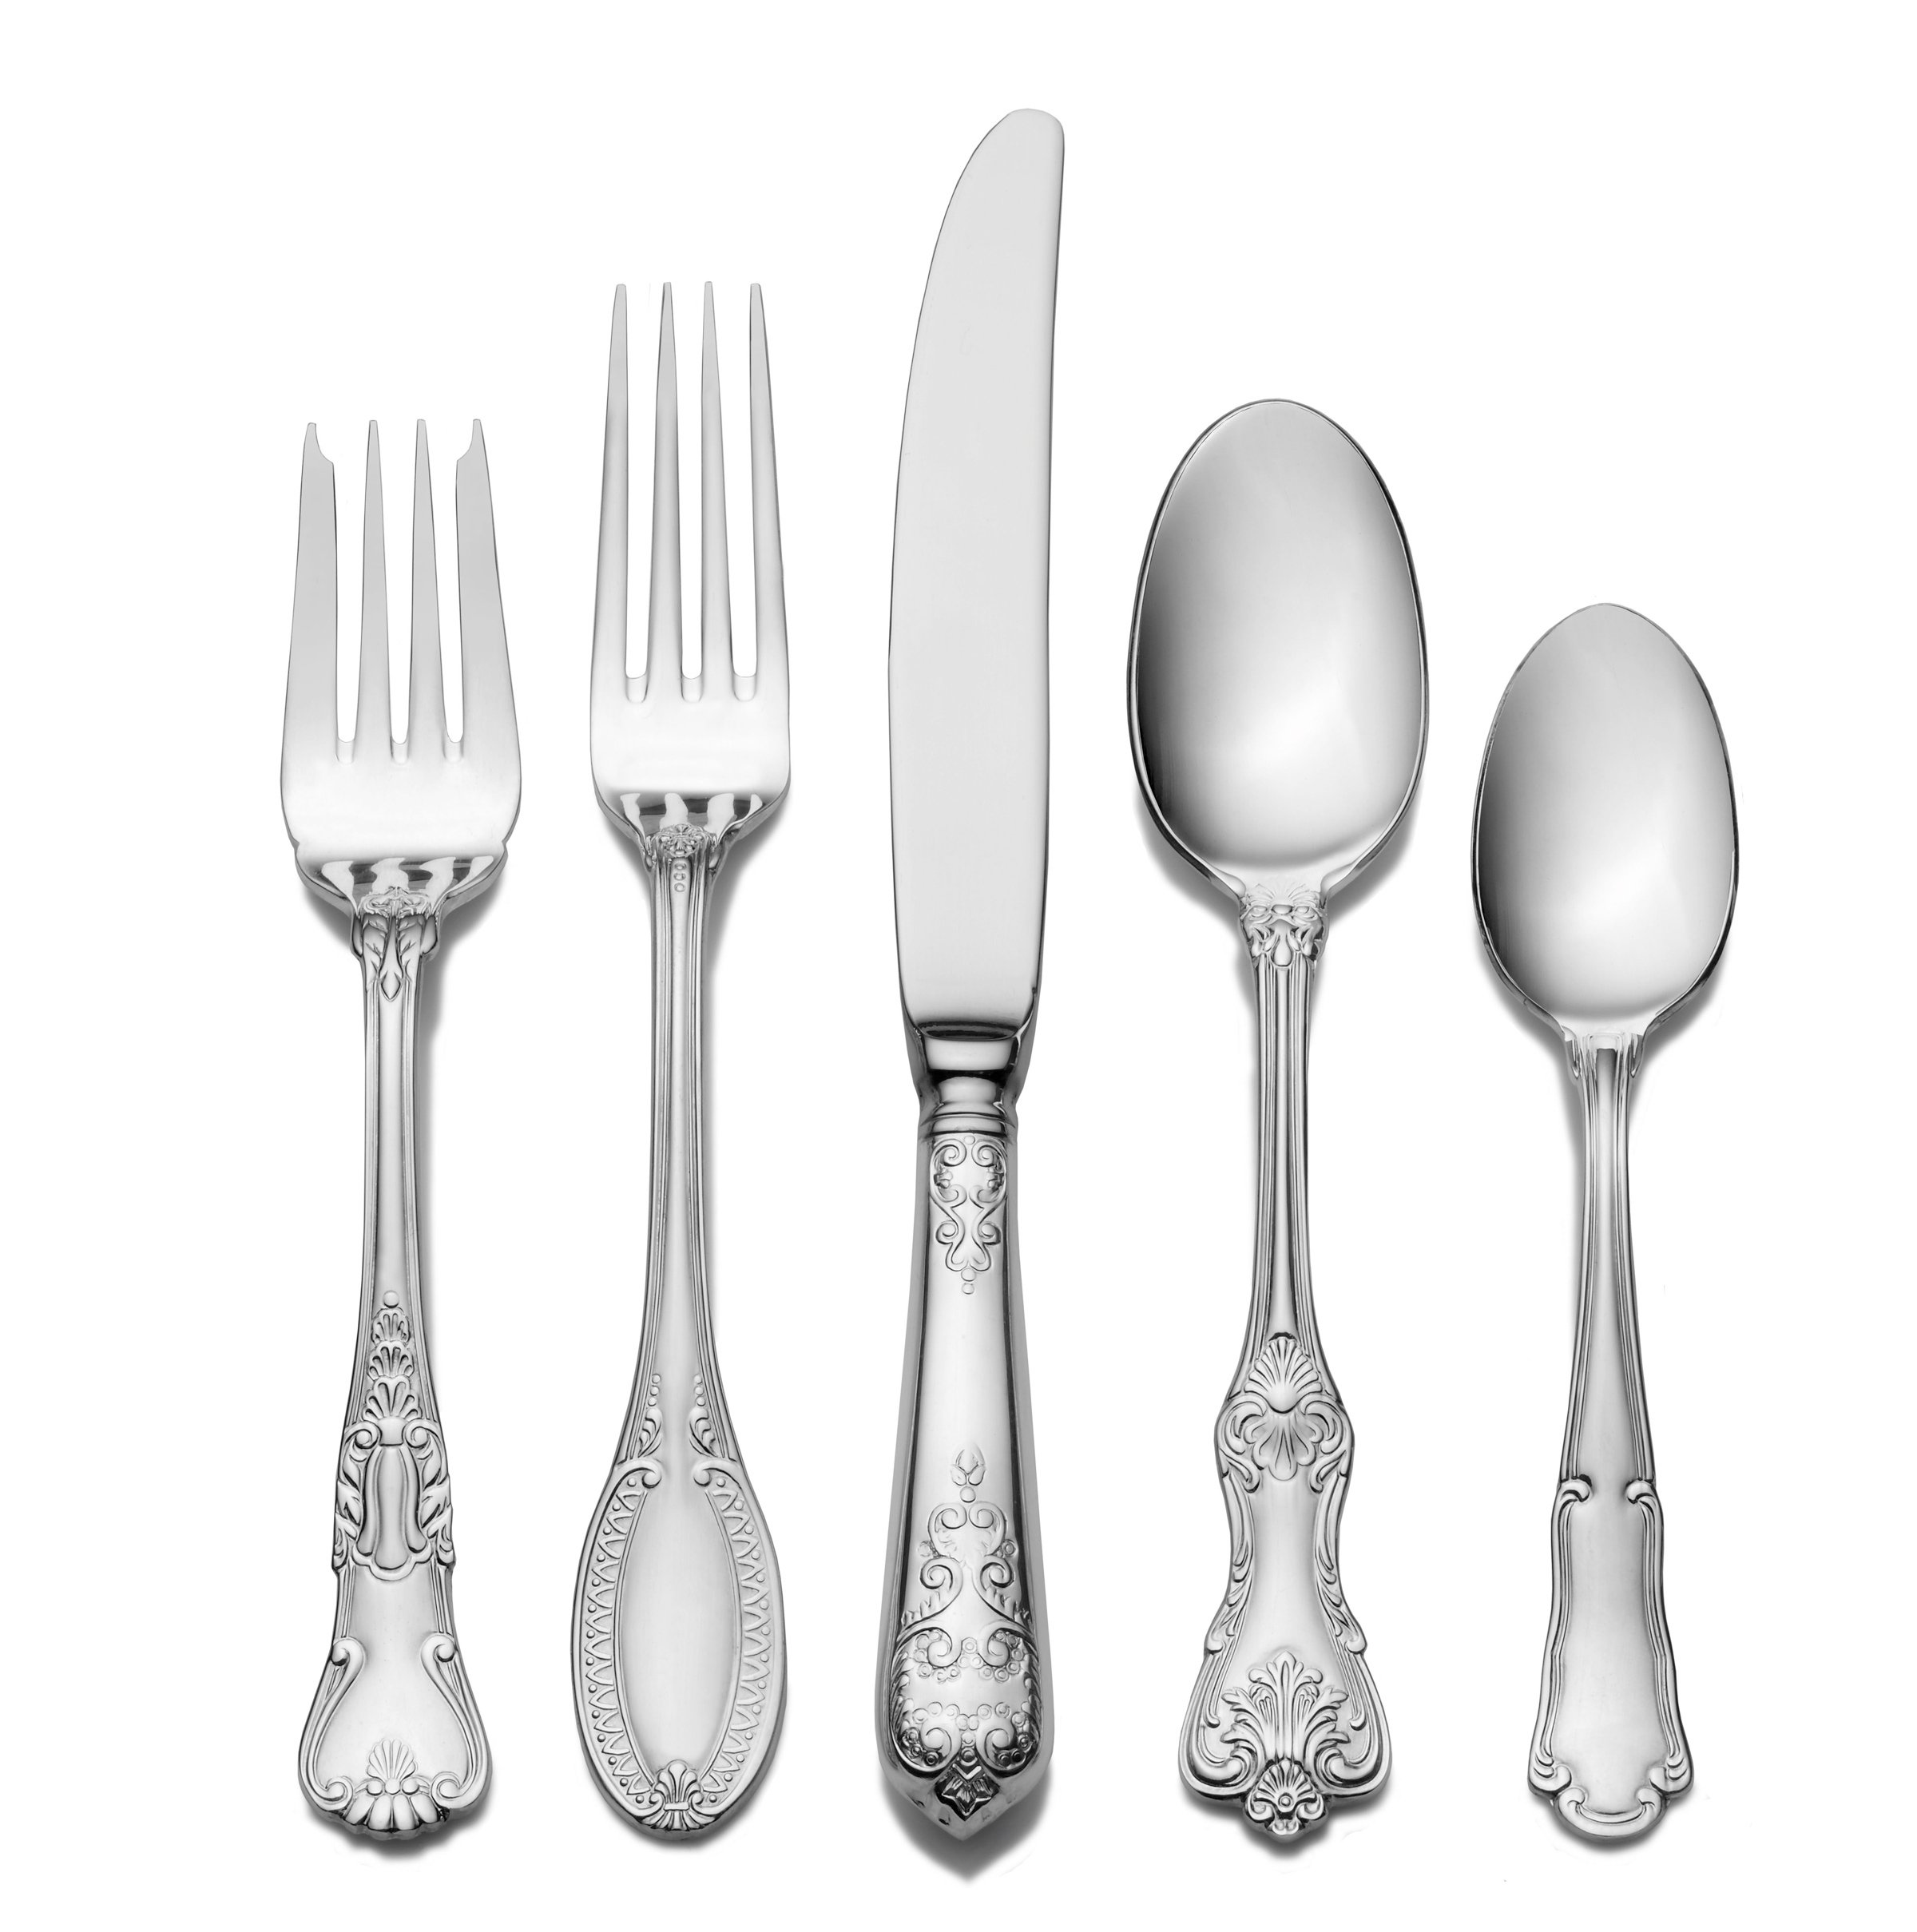 Wallace Hotel Lux 77-piece 18/10 Stainless Steel Flatware Set